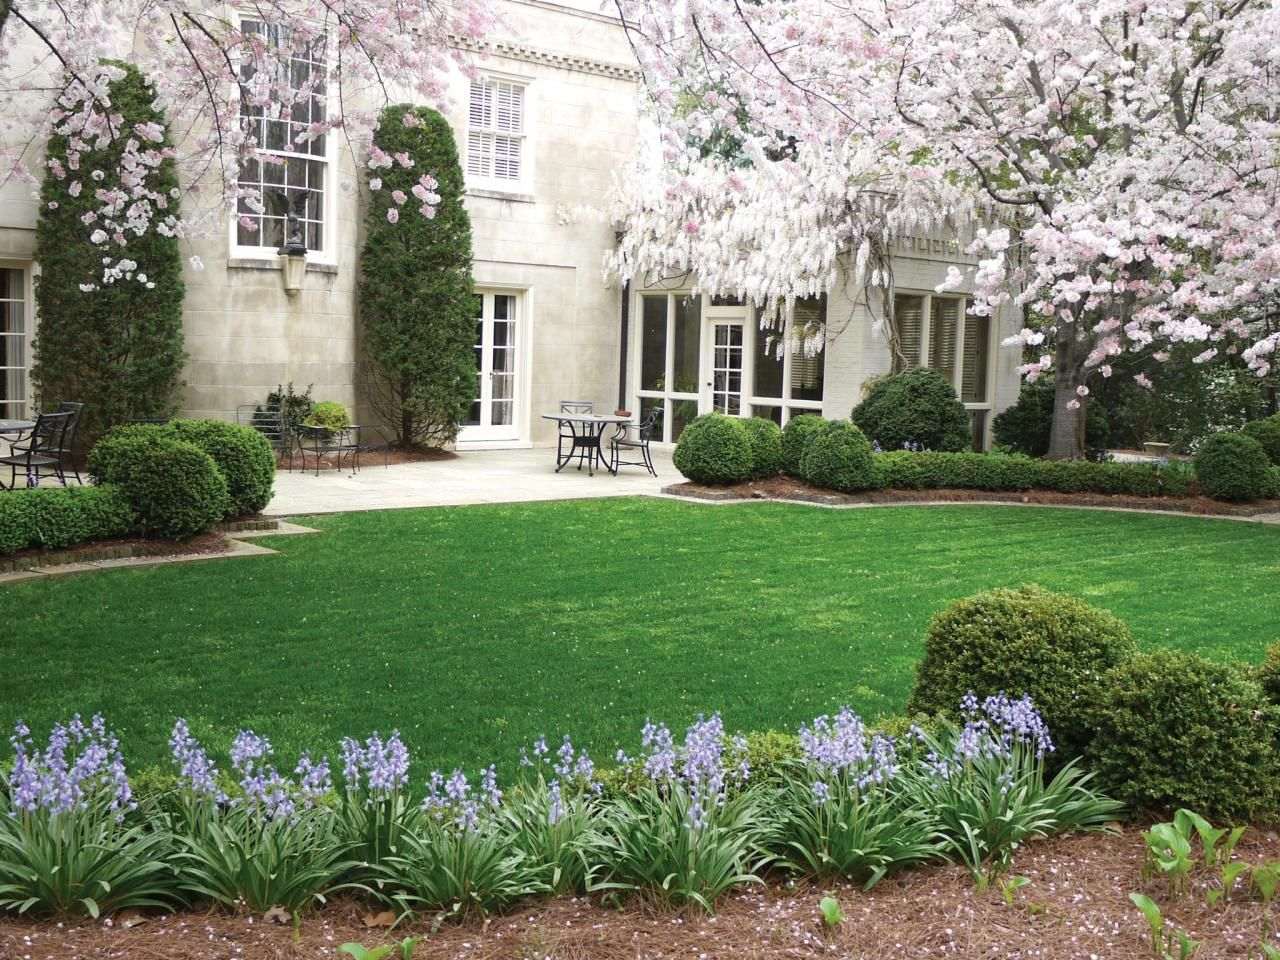 Elegant Spring Blooming Garden With Cherry Trees Front Landscaping Beautiful Gardens Landscape Design